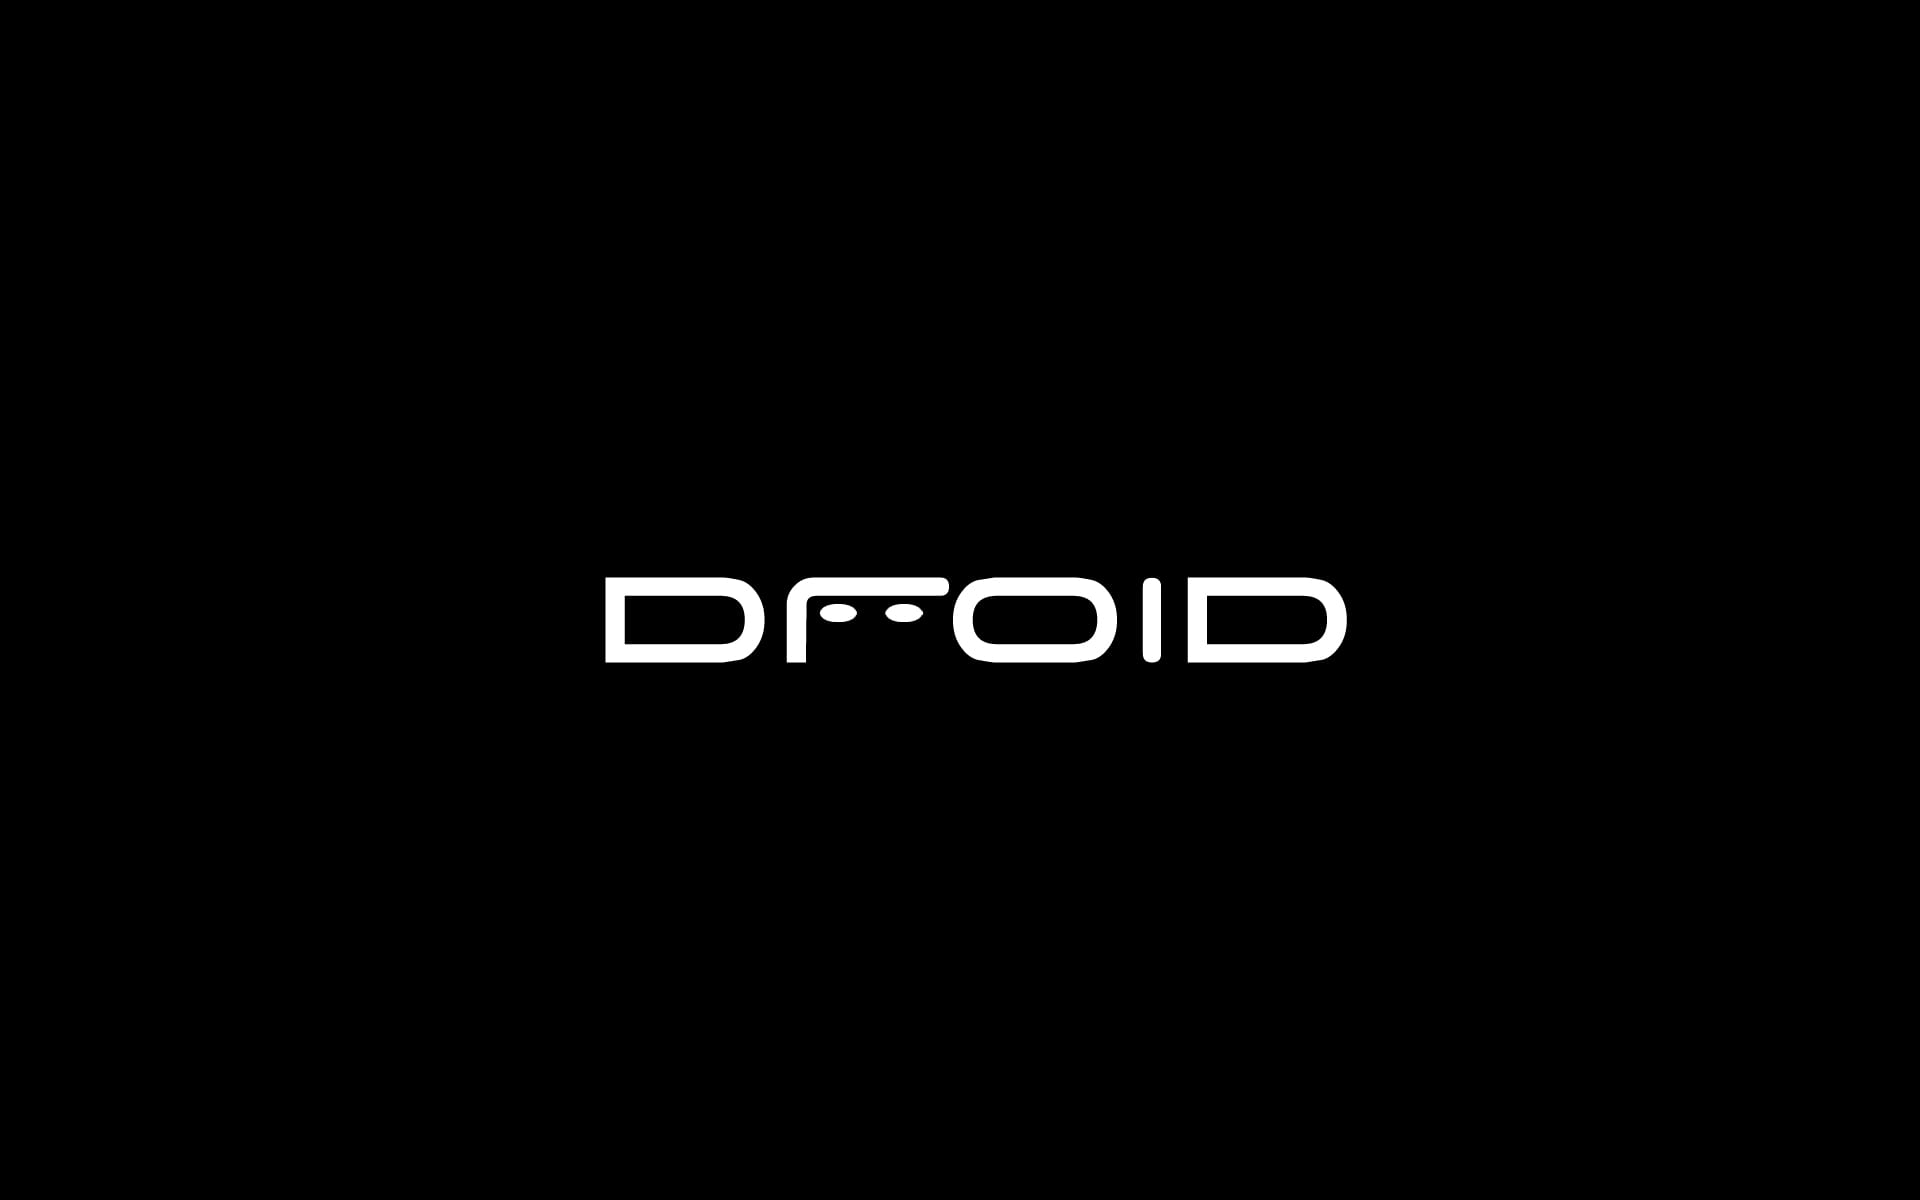 droid-motorola-logo-hd-widescreen-wallpaper